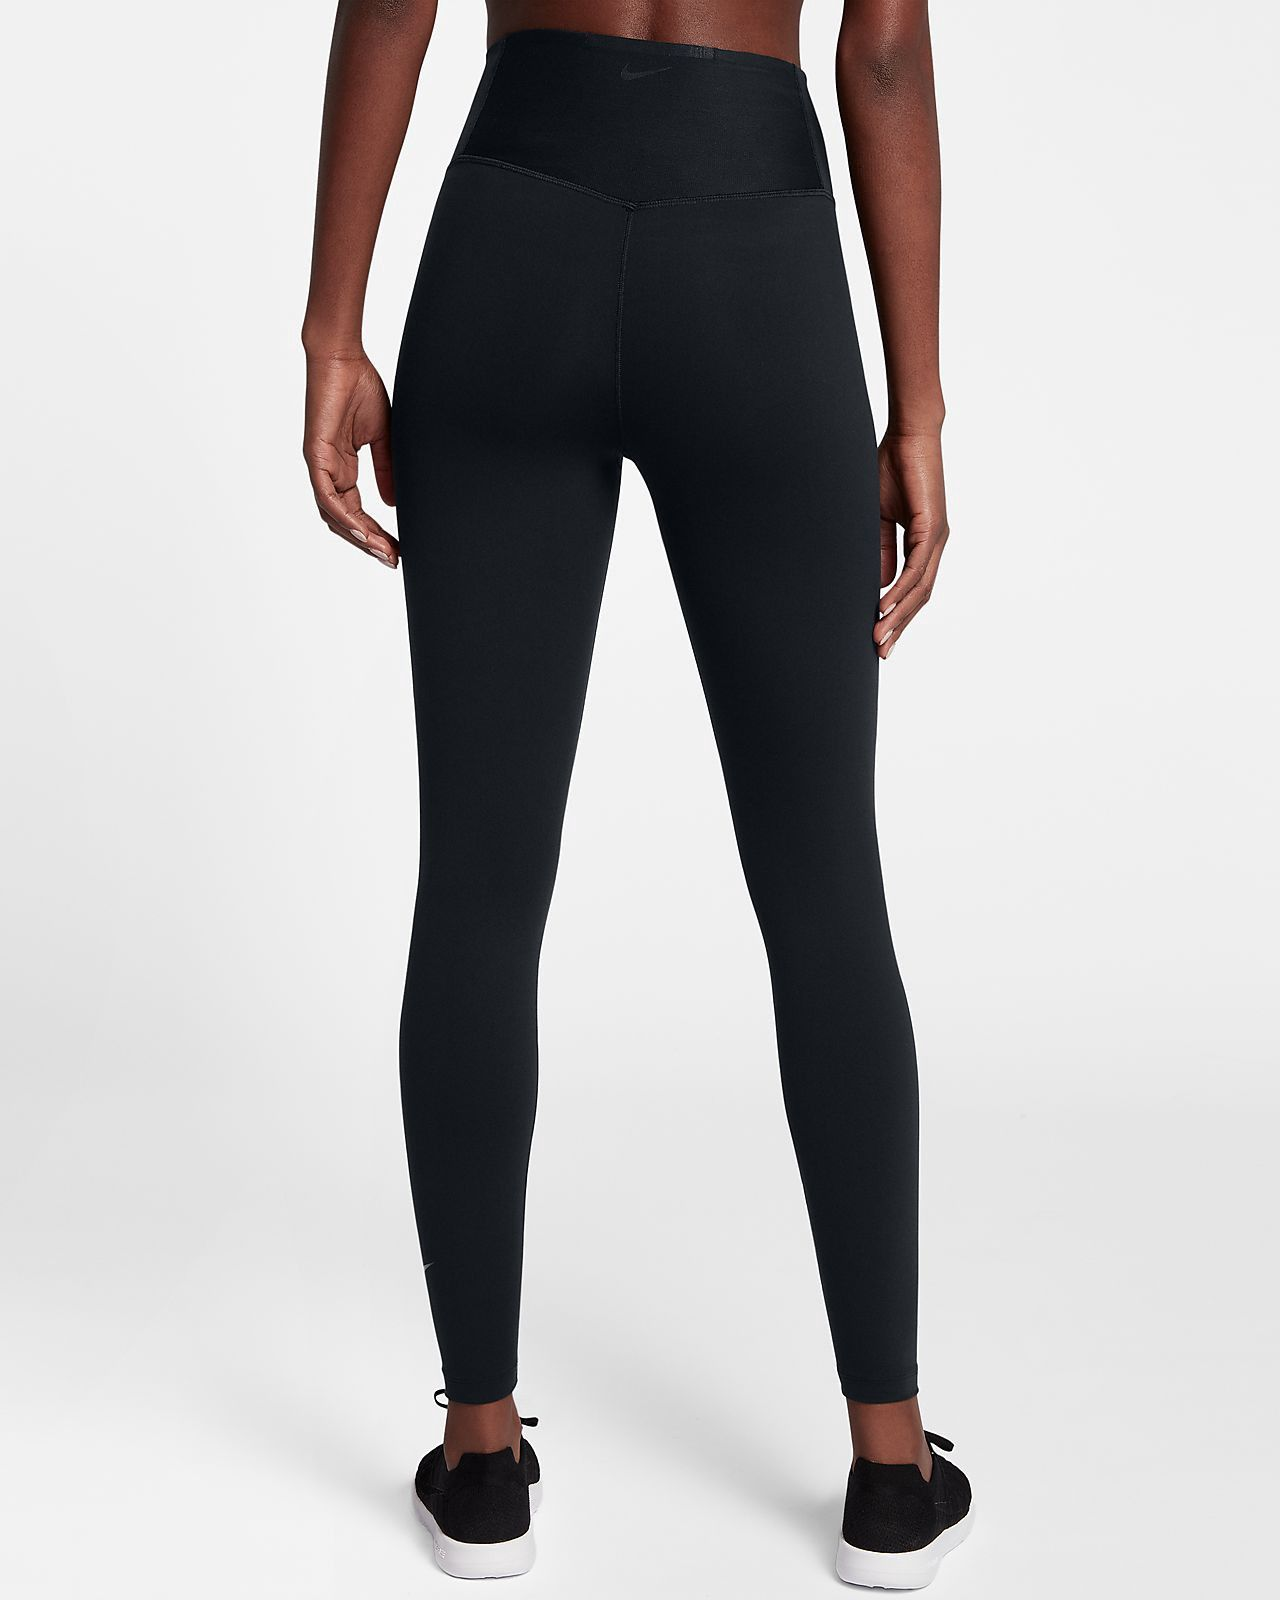 Nike Sculpt Lux Women s High Rise Training Tights - 2Xl (20–22 ... be3689078c4